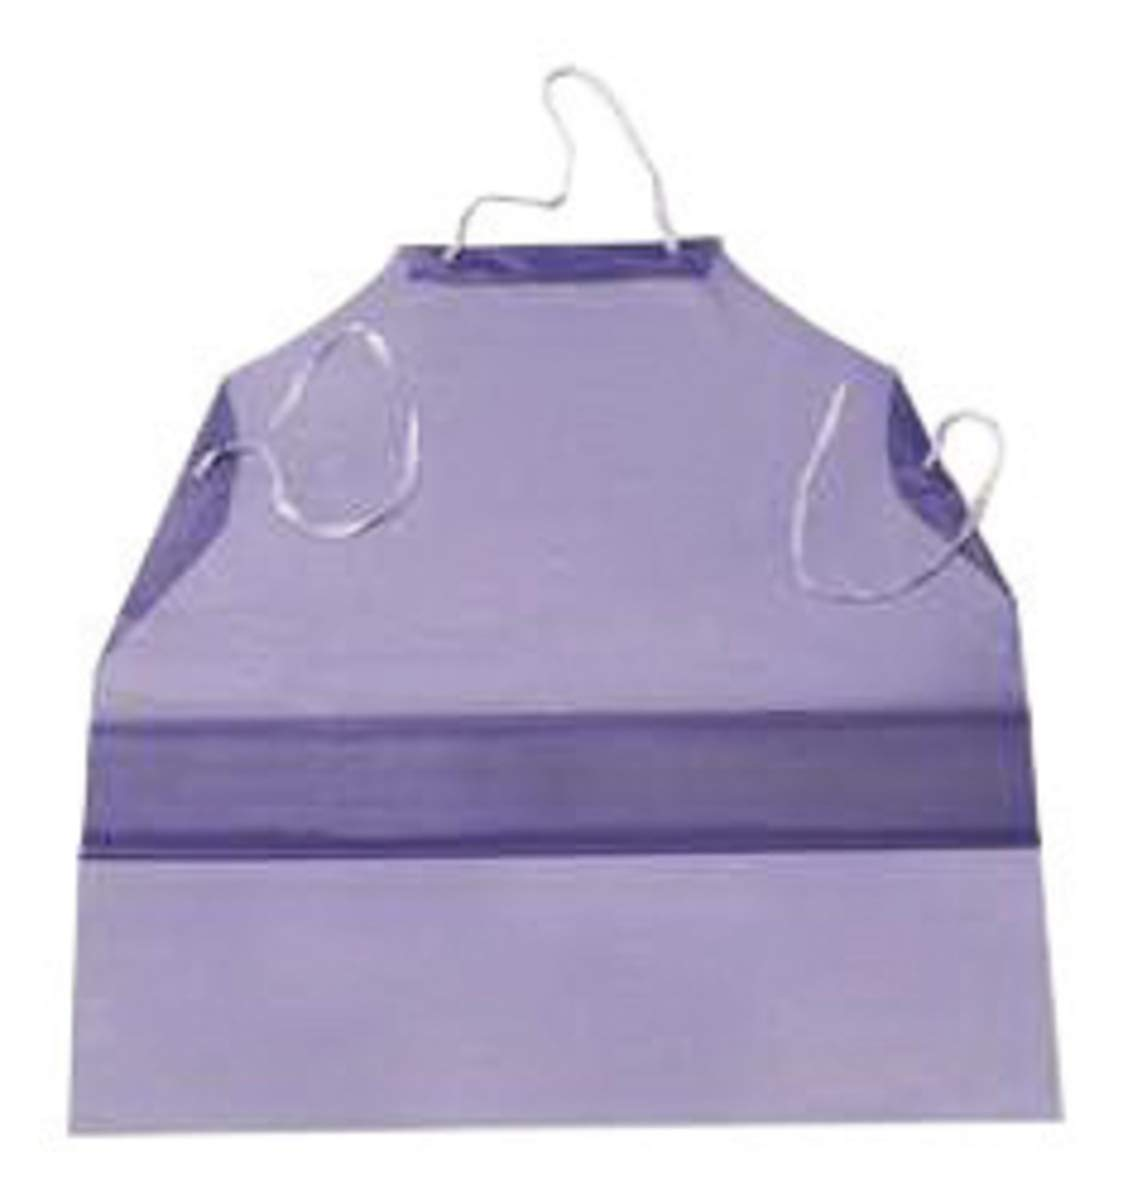 Ansell 33'' X 47'' Blue CPP CB Series 6 mil Vinyl Chemical Protection Apron With Raw Edge - Pack of 10 by ANSELL (Image #1)